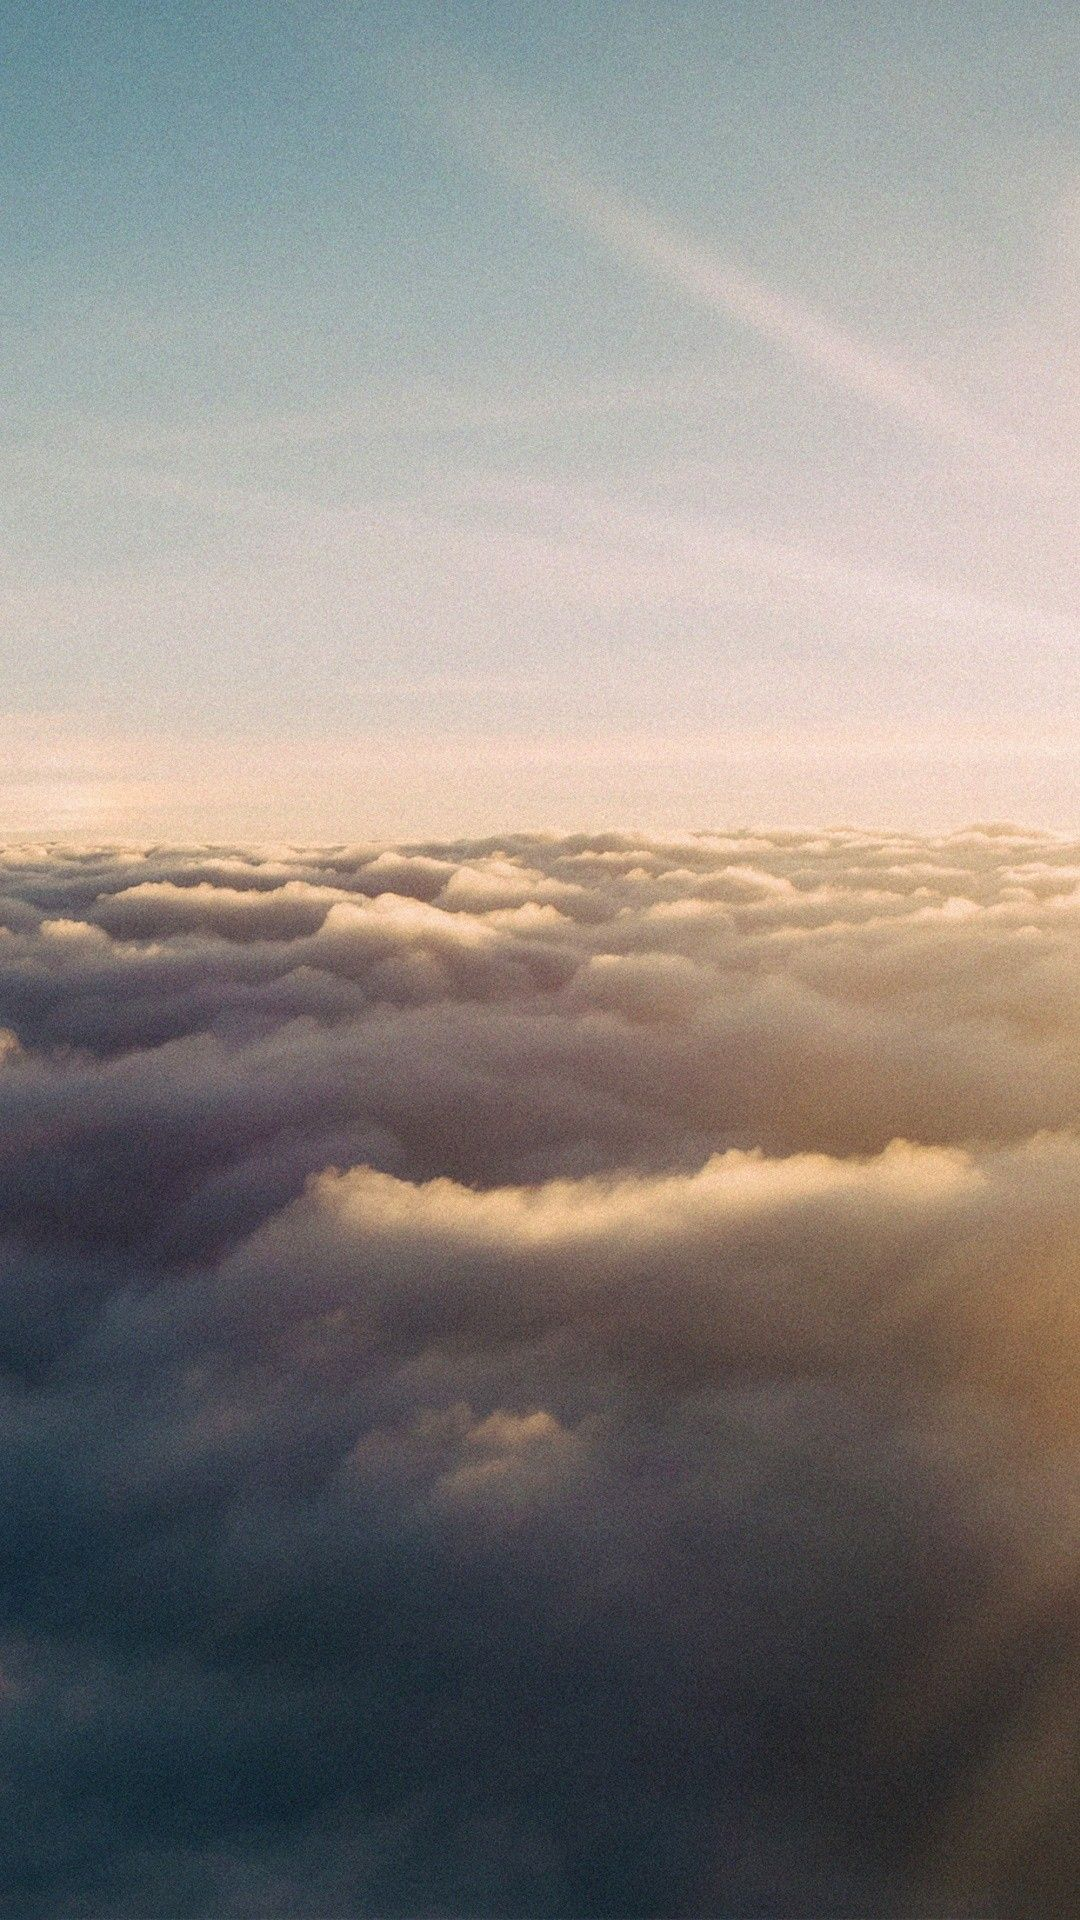 Sunset Above Clouds Iphone 6 Hd Wallpaper